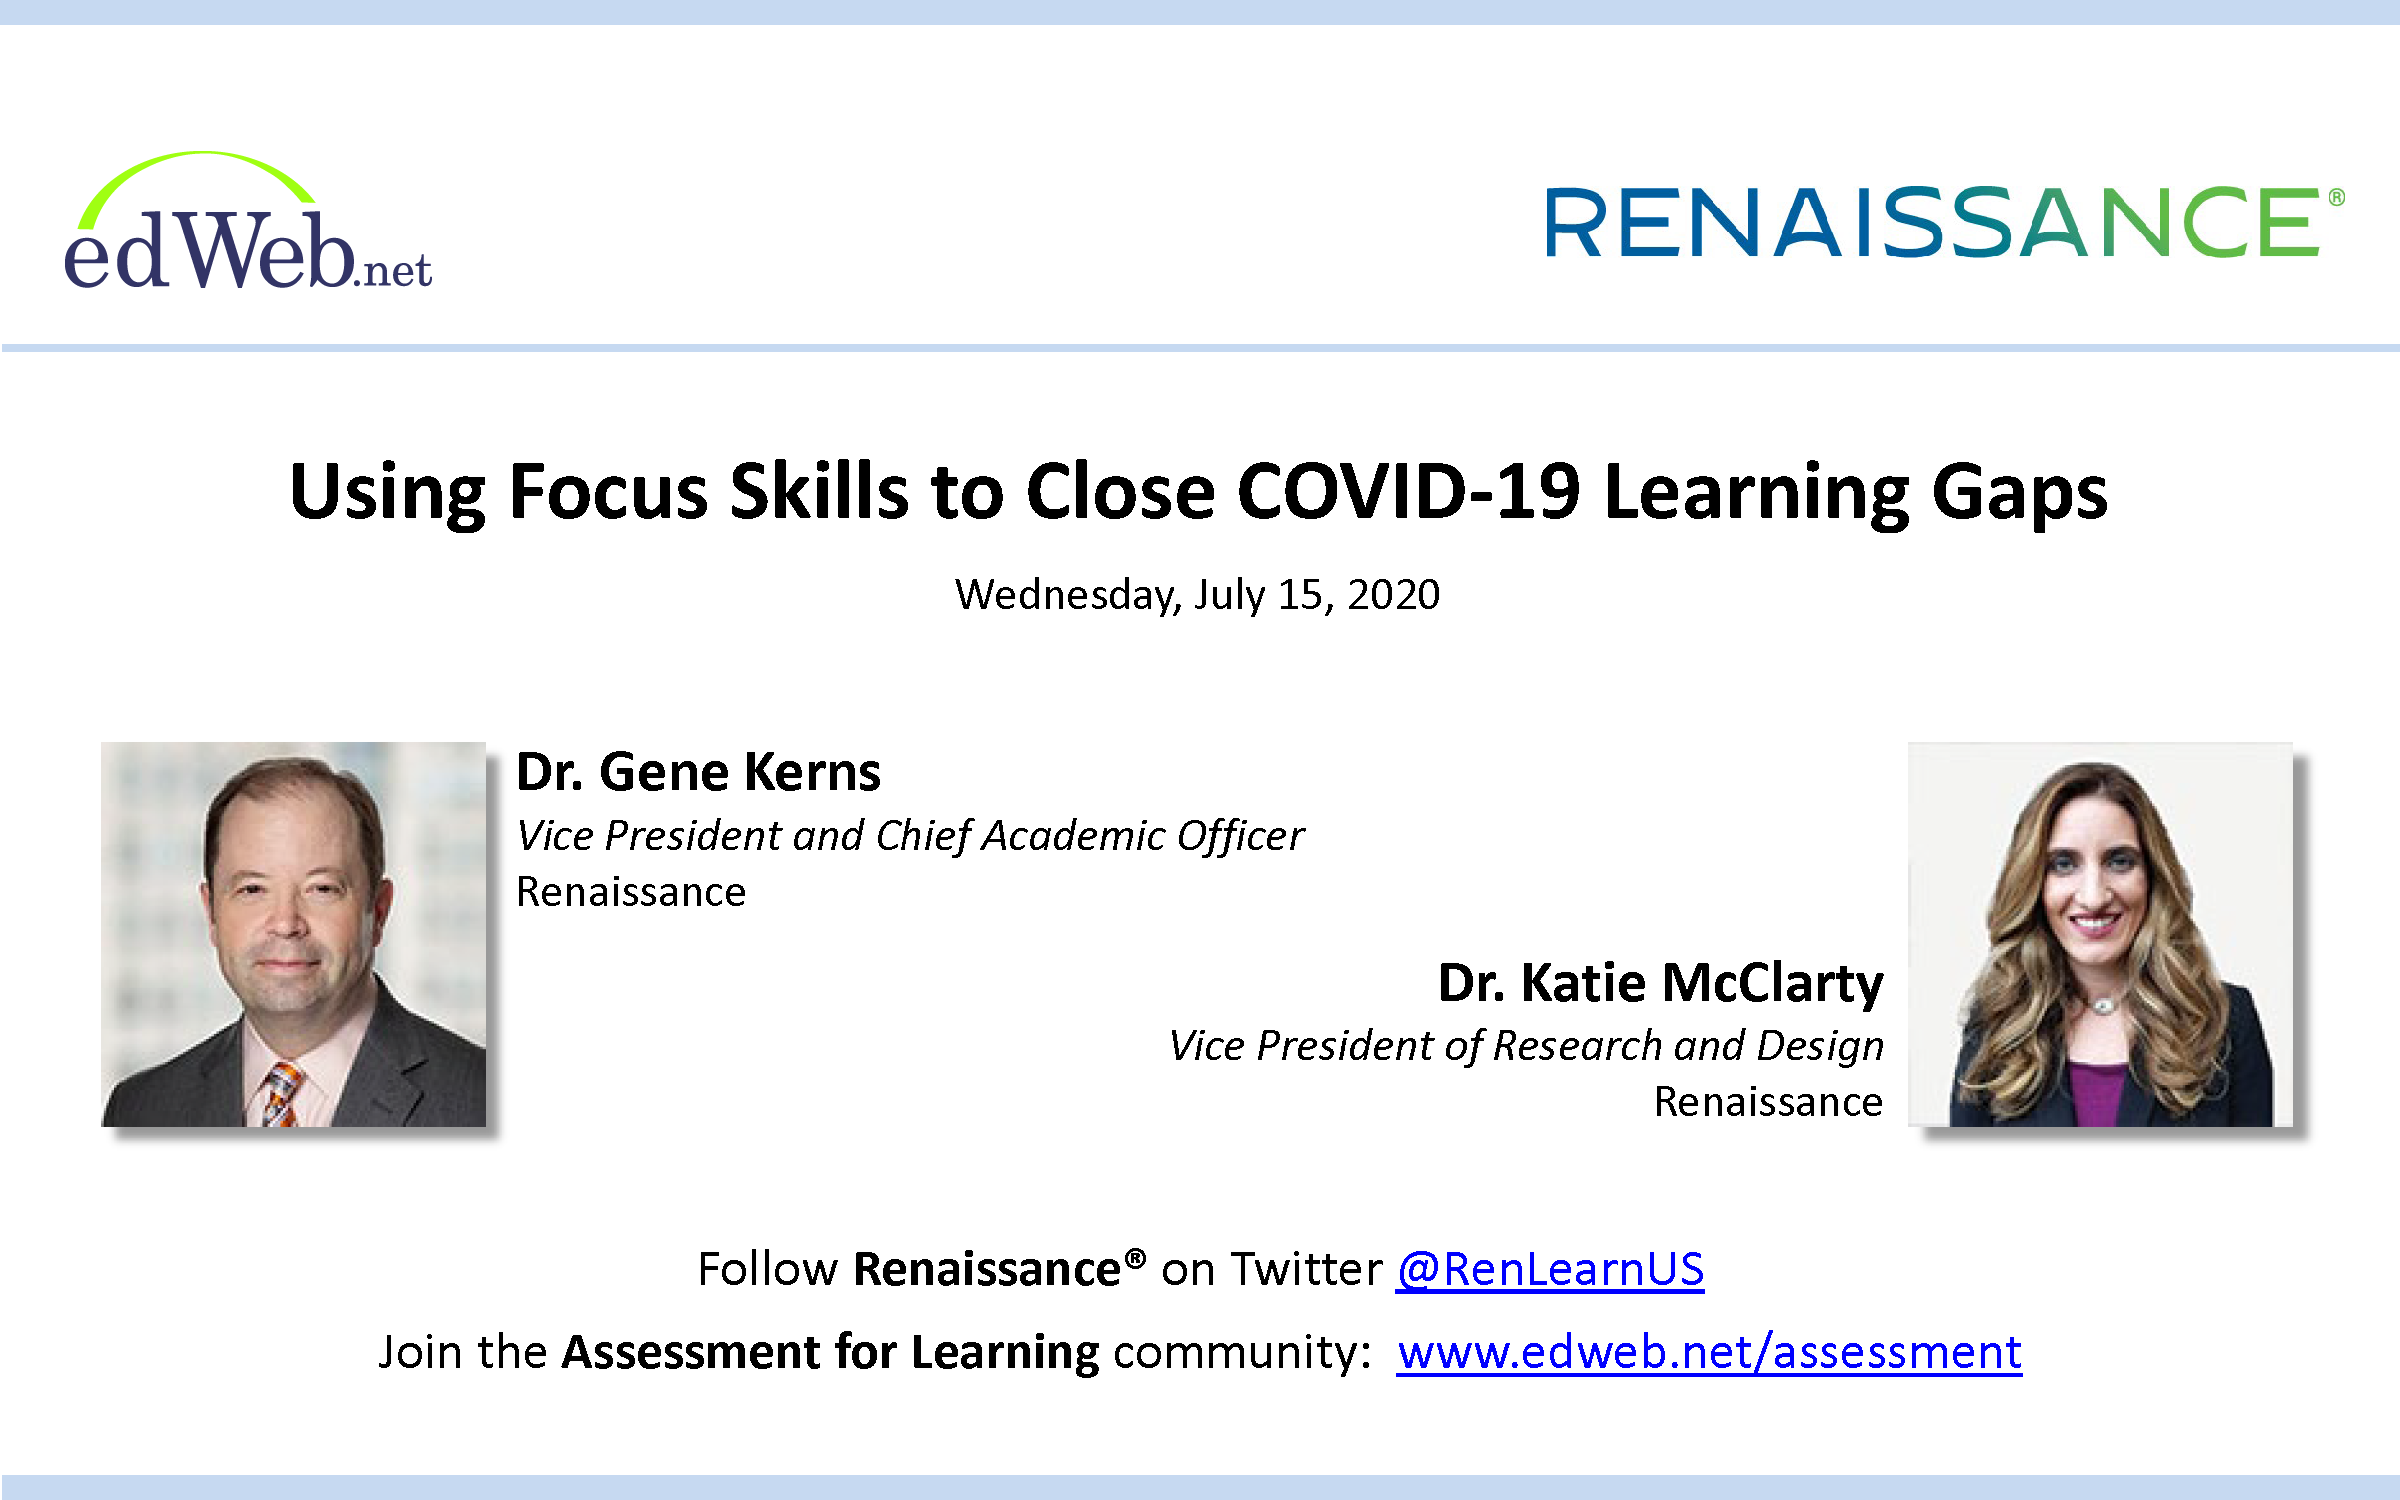 Using Focus Skills to Close COVID-19 Learning Gaps